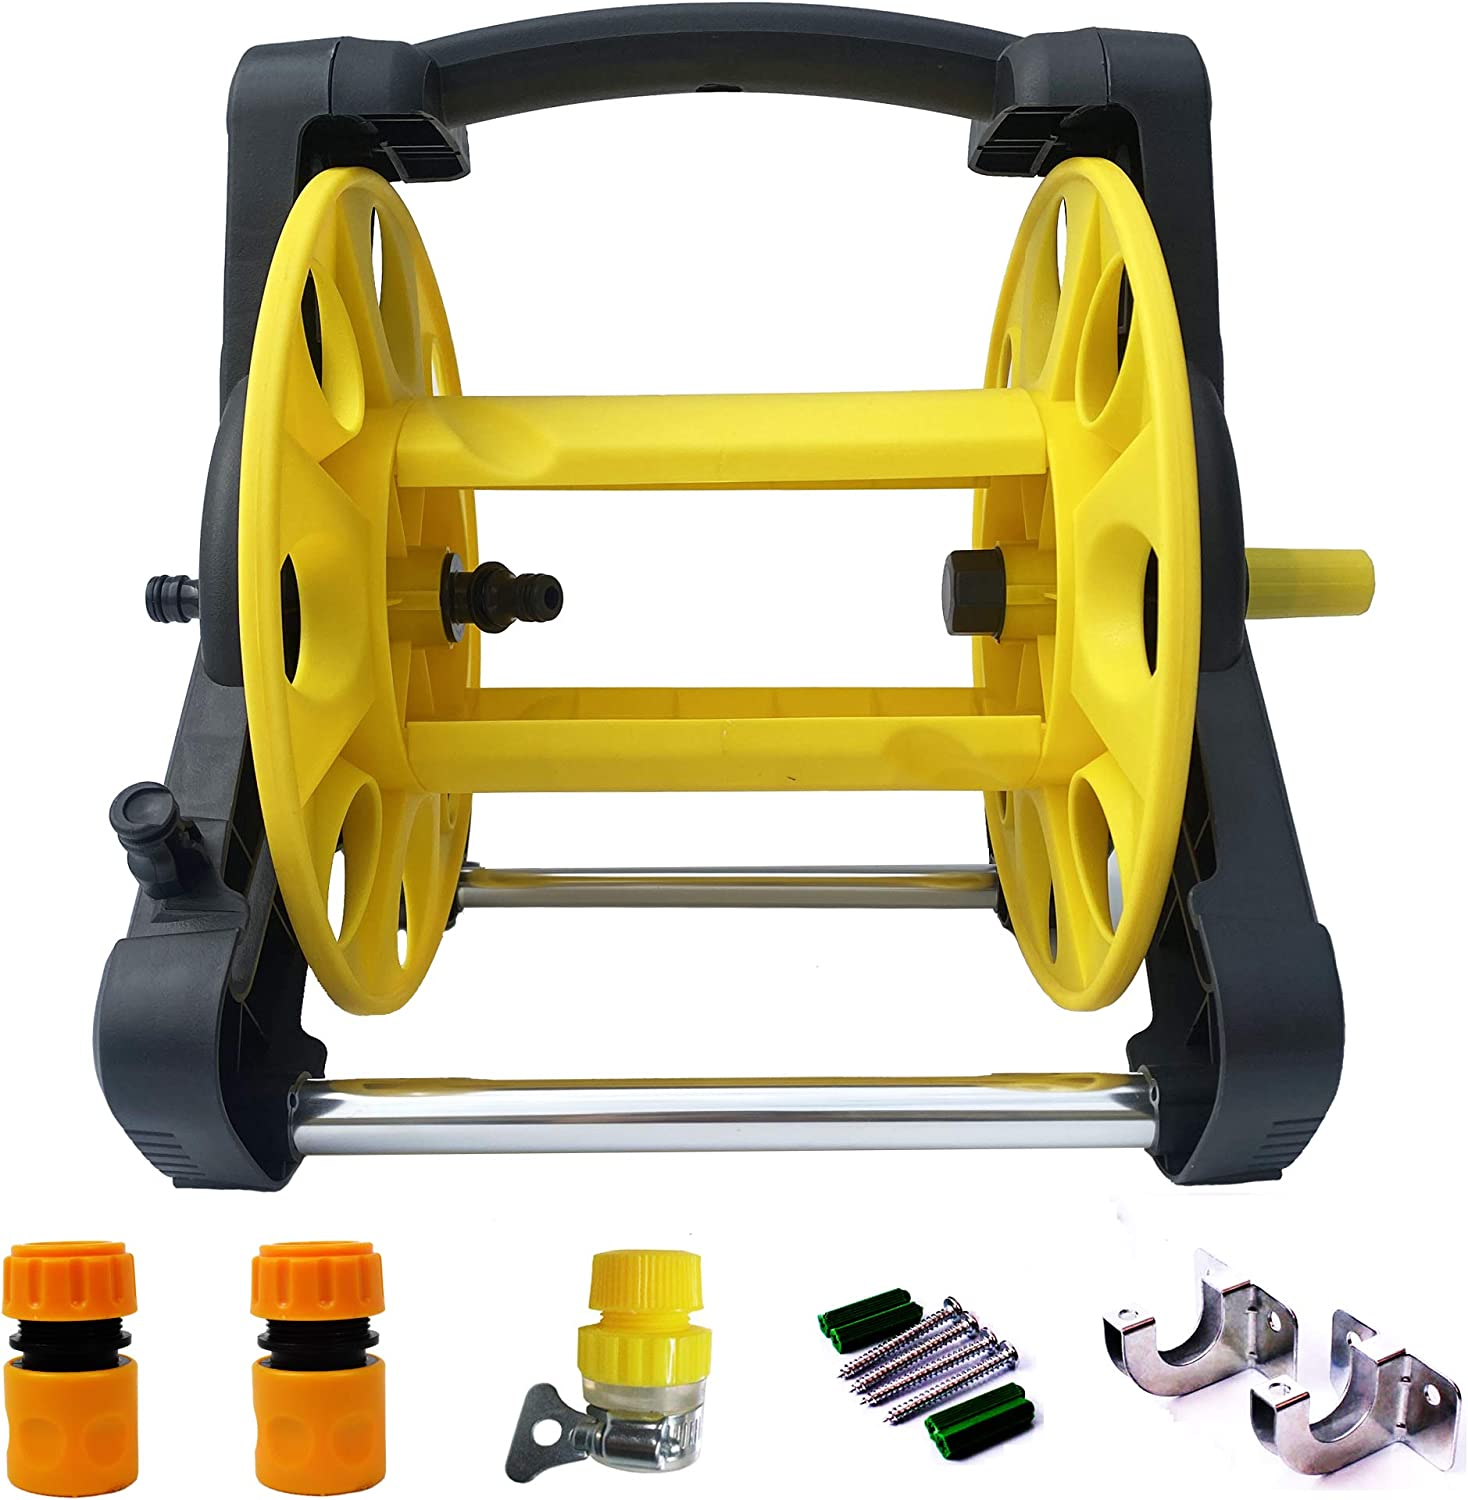 Mobile Garden Hose Reel Rack Hose Storage Rack Cart Stand for 65 Feet 1/2 Inch Hose and 50Feet 5/8in Hose Household Gardening and Cleaning .2 pcs quick hose connector,1pcs tap connector,2pcswall hooks